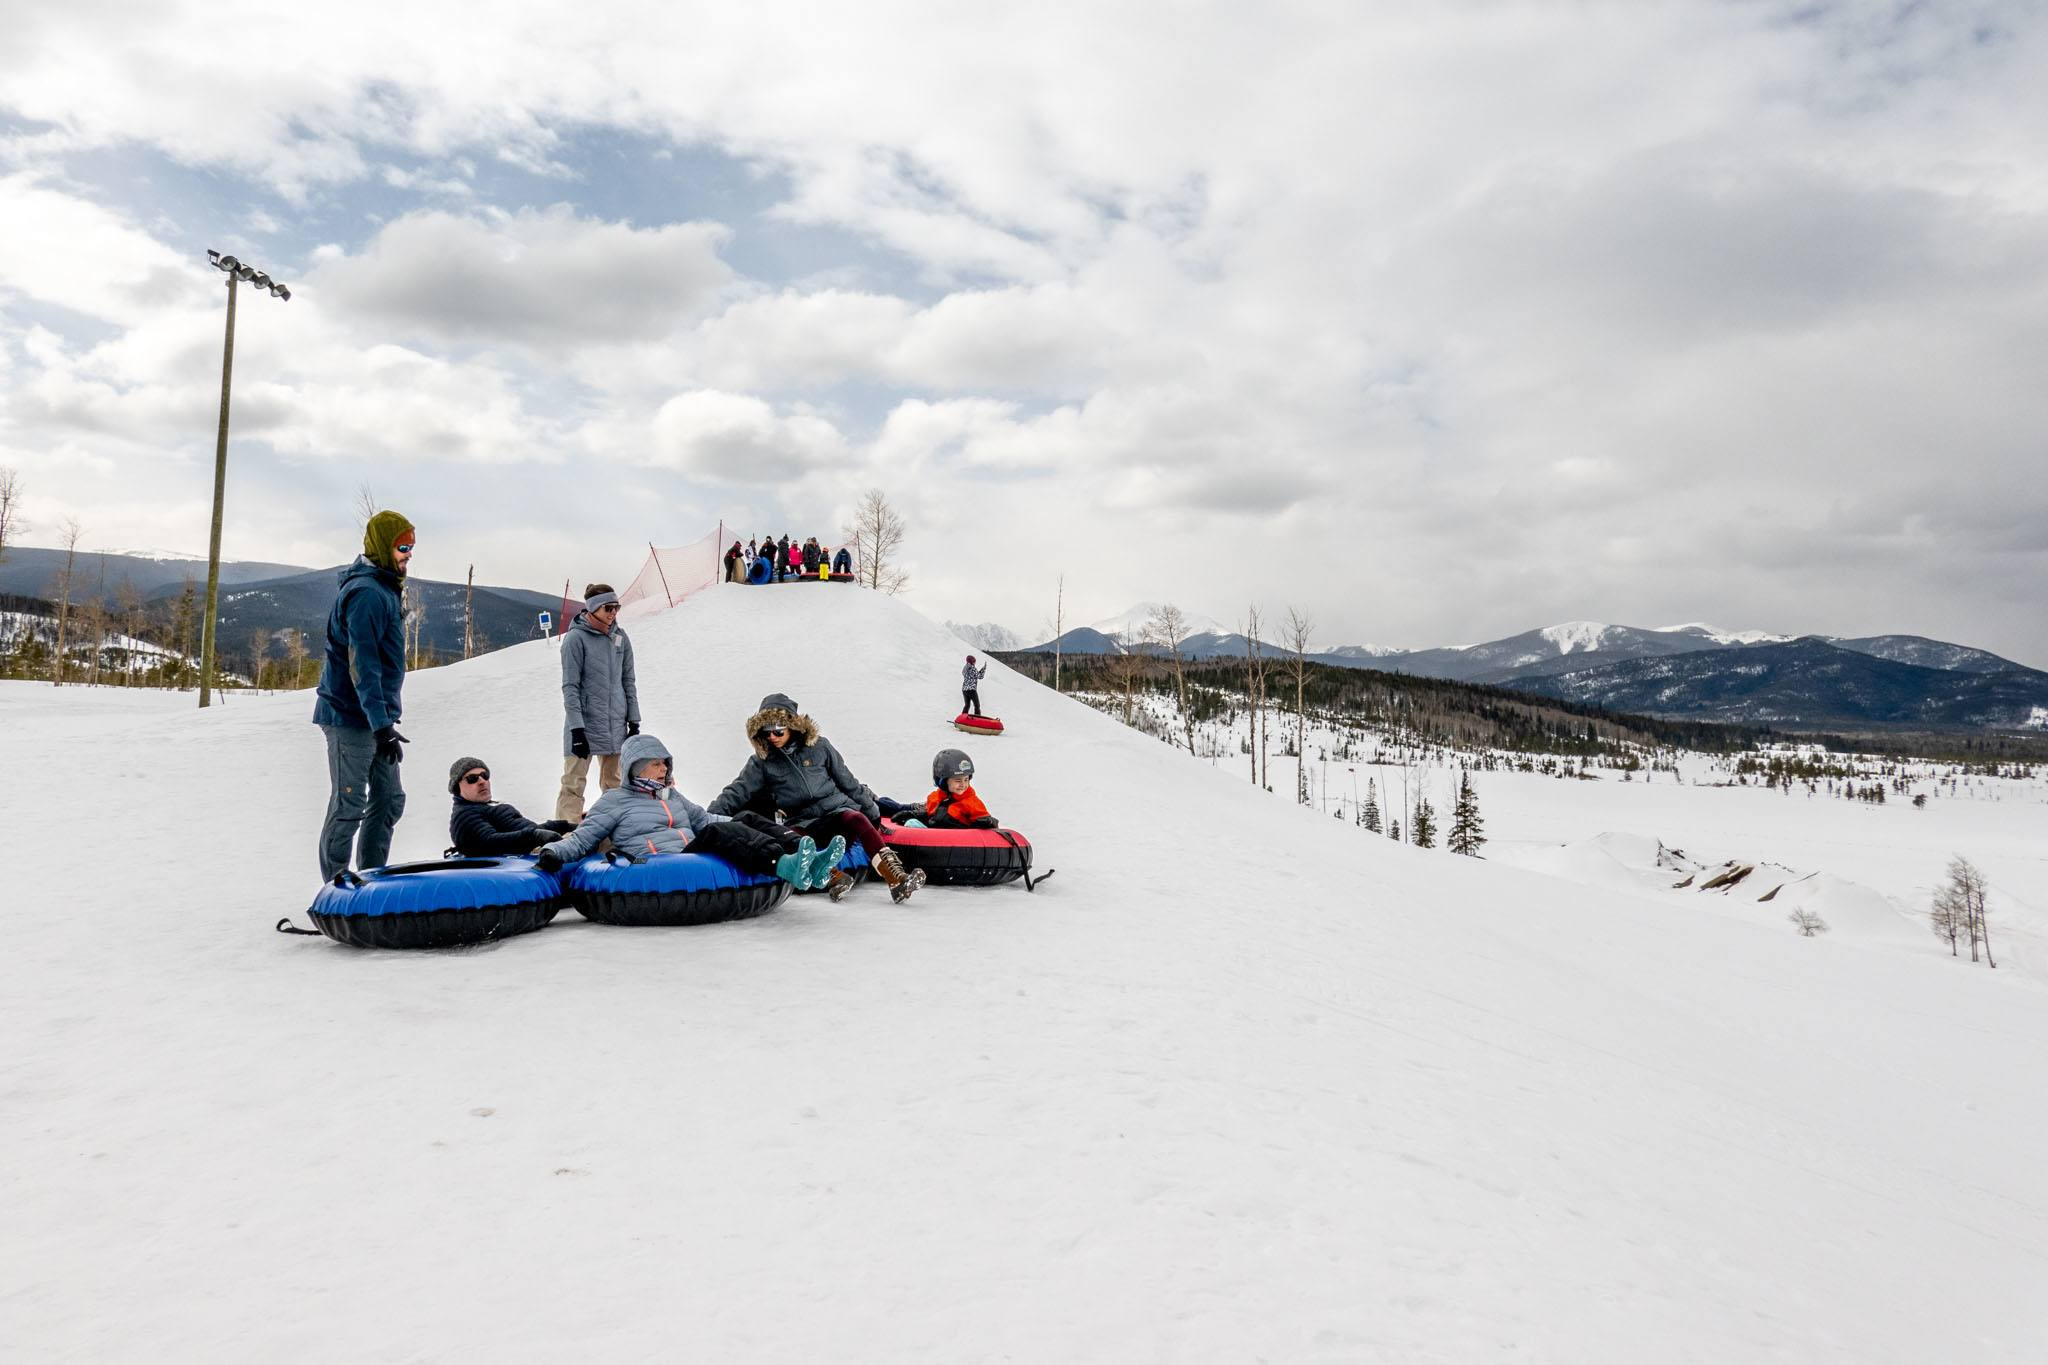 Group getting ready for a run down the Fraser Tubing Hill near Winter Park